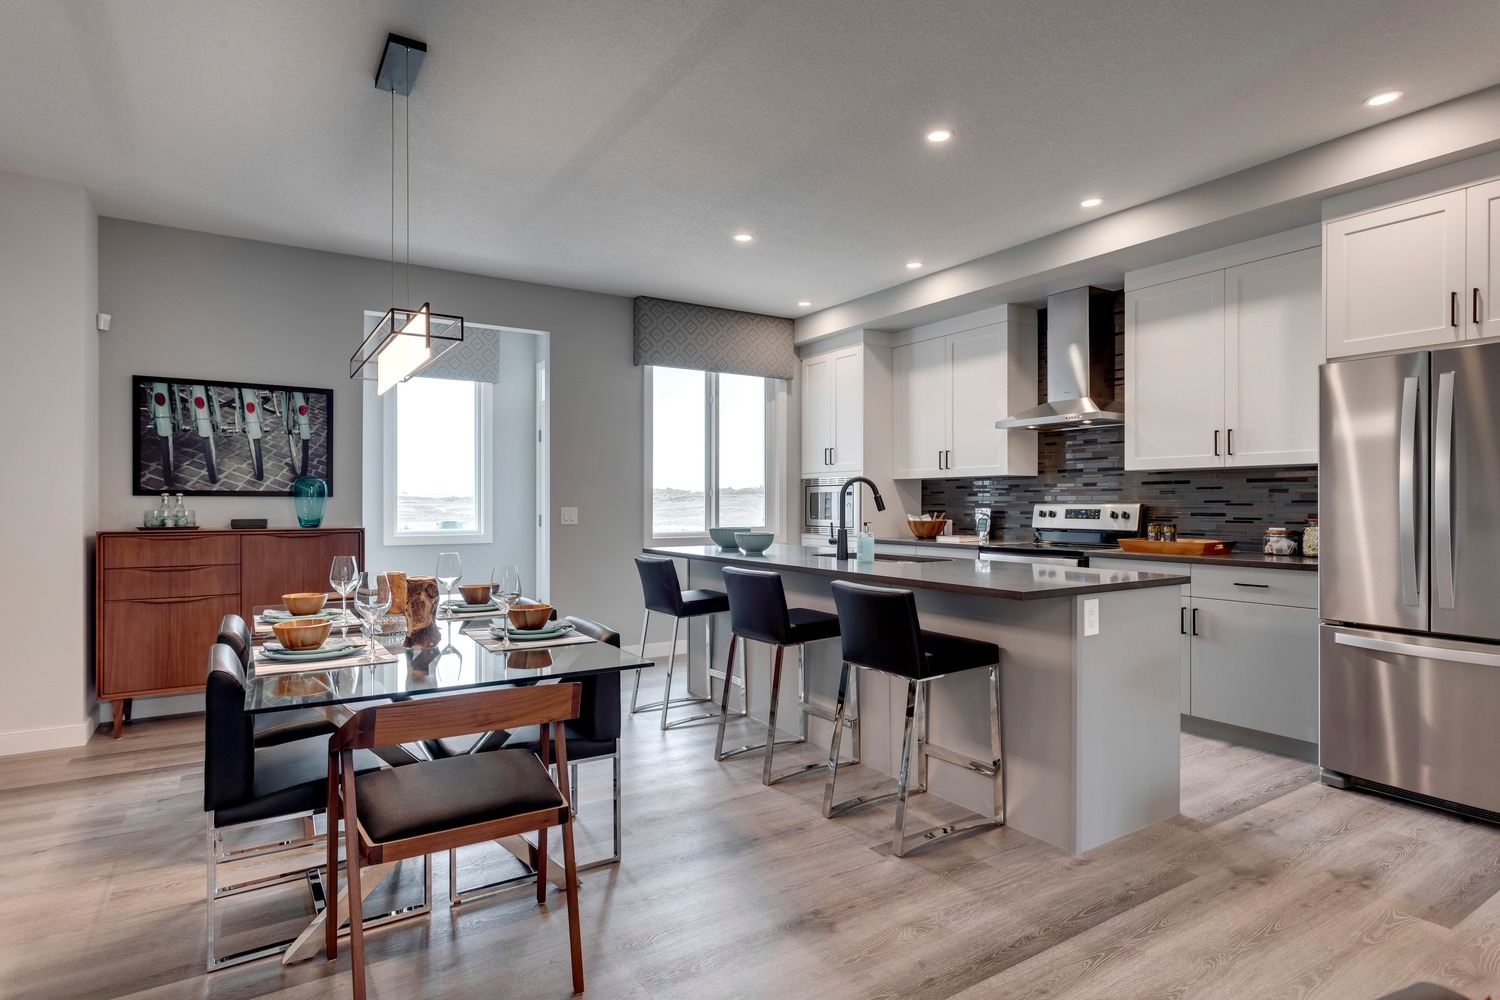 New build or resale: Finding the best new home option for you